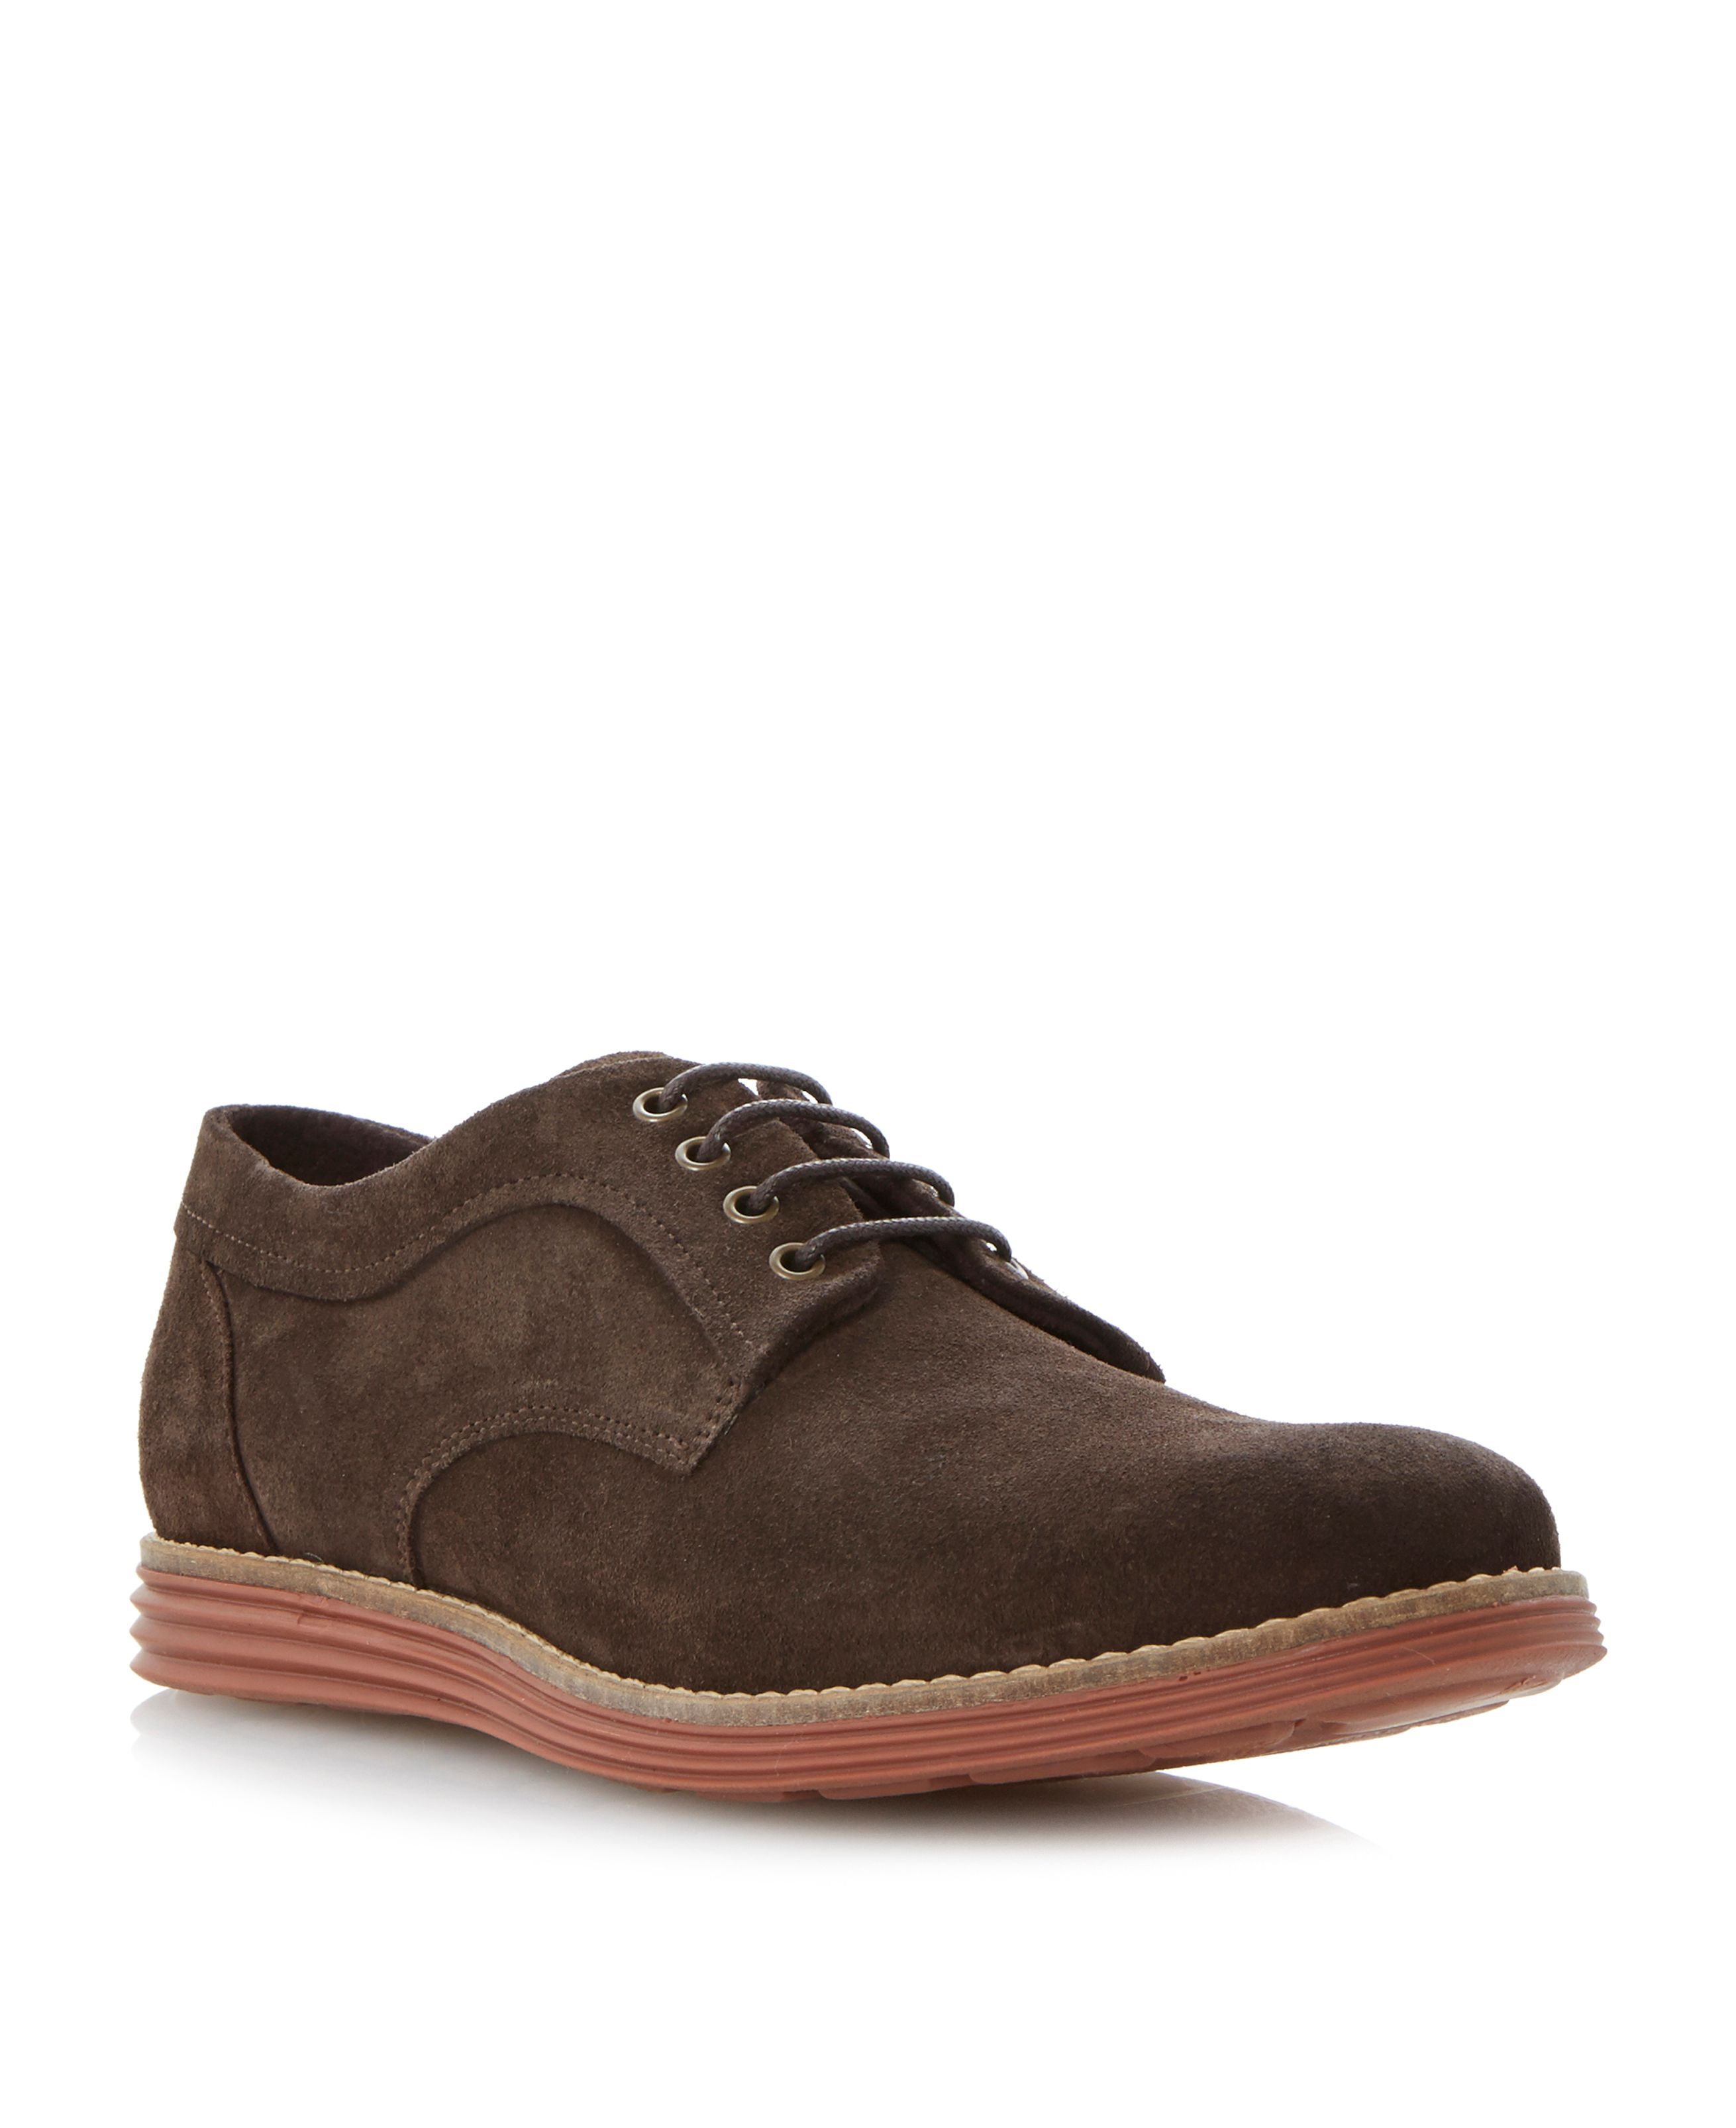 Baycliff contrasting wedge sole lace up shoes